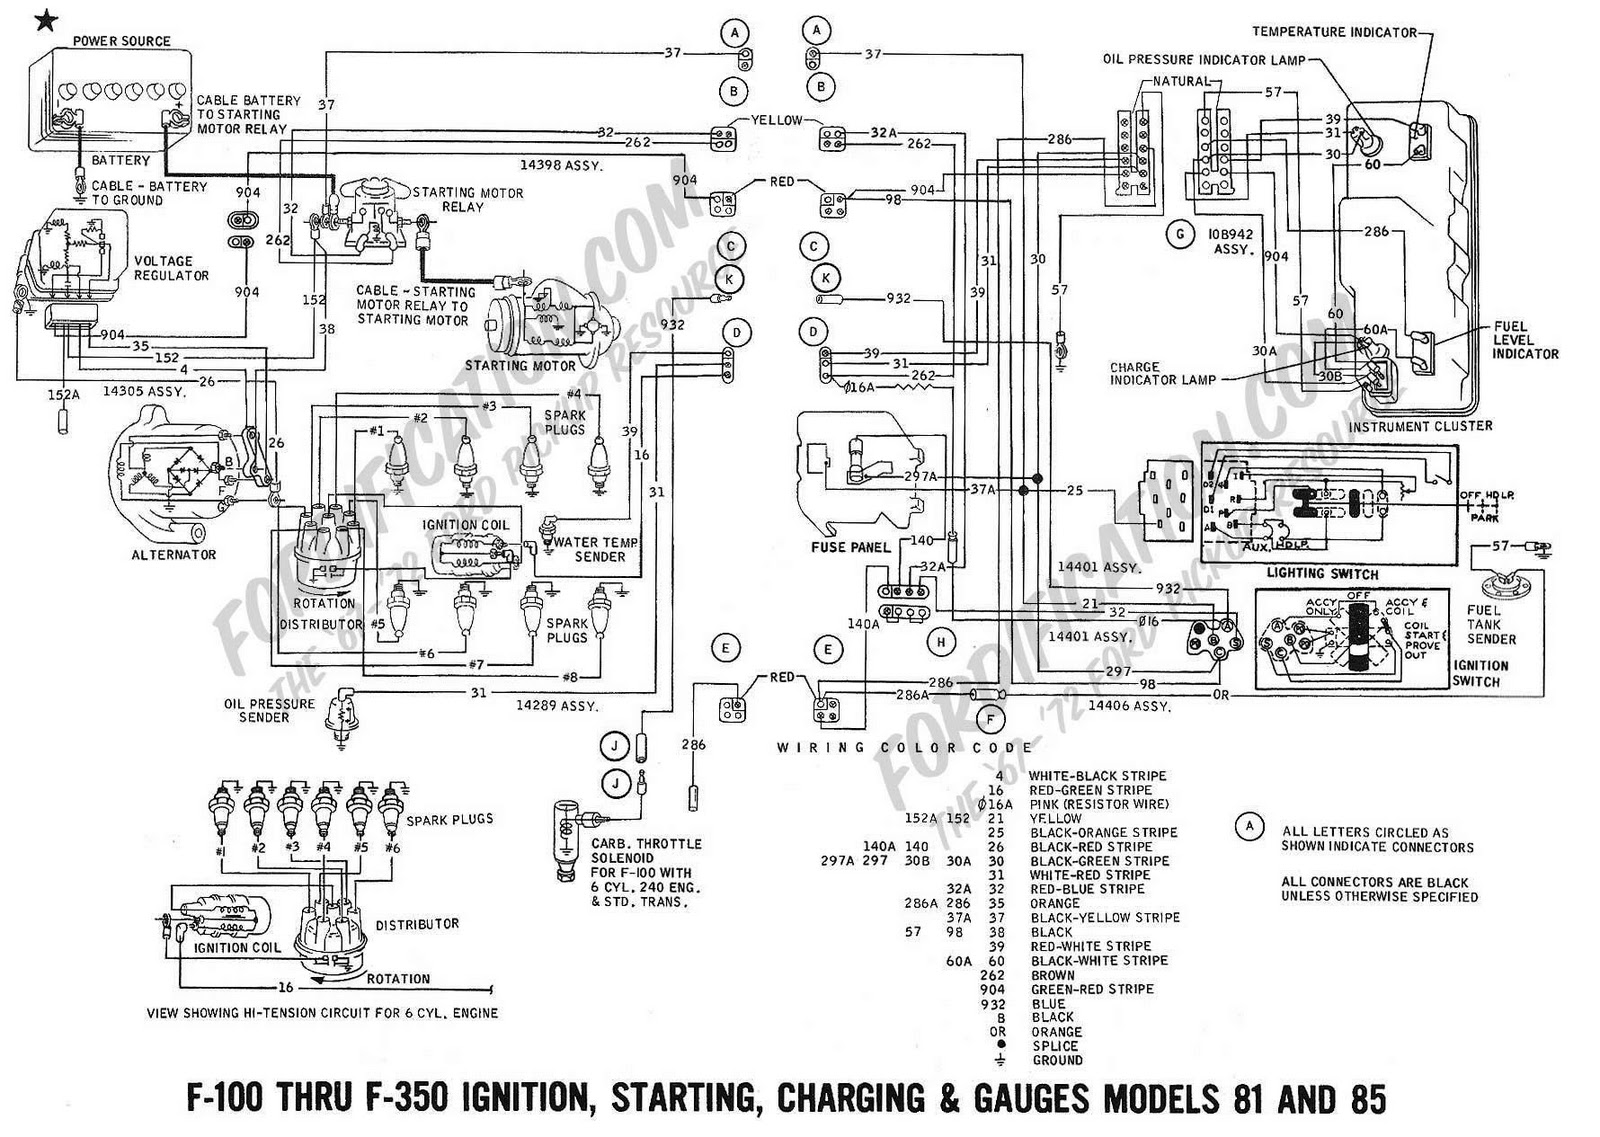 1969 f100 wiring diagram wiring diagrams best 1969 f100 wiring diagram wiring diagram data 1969 ford f100 ignition switch wiring diagram 1969 f100 wiring diagram